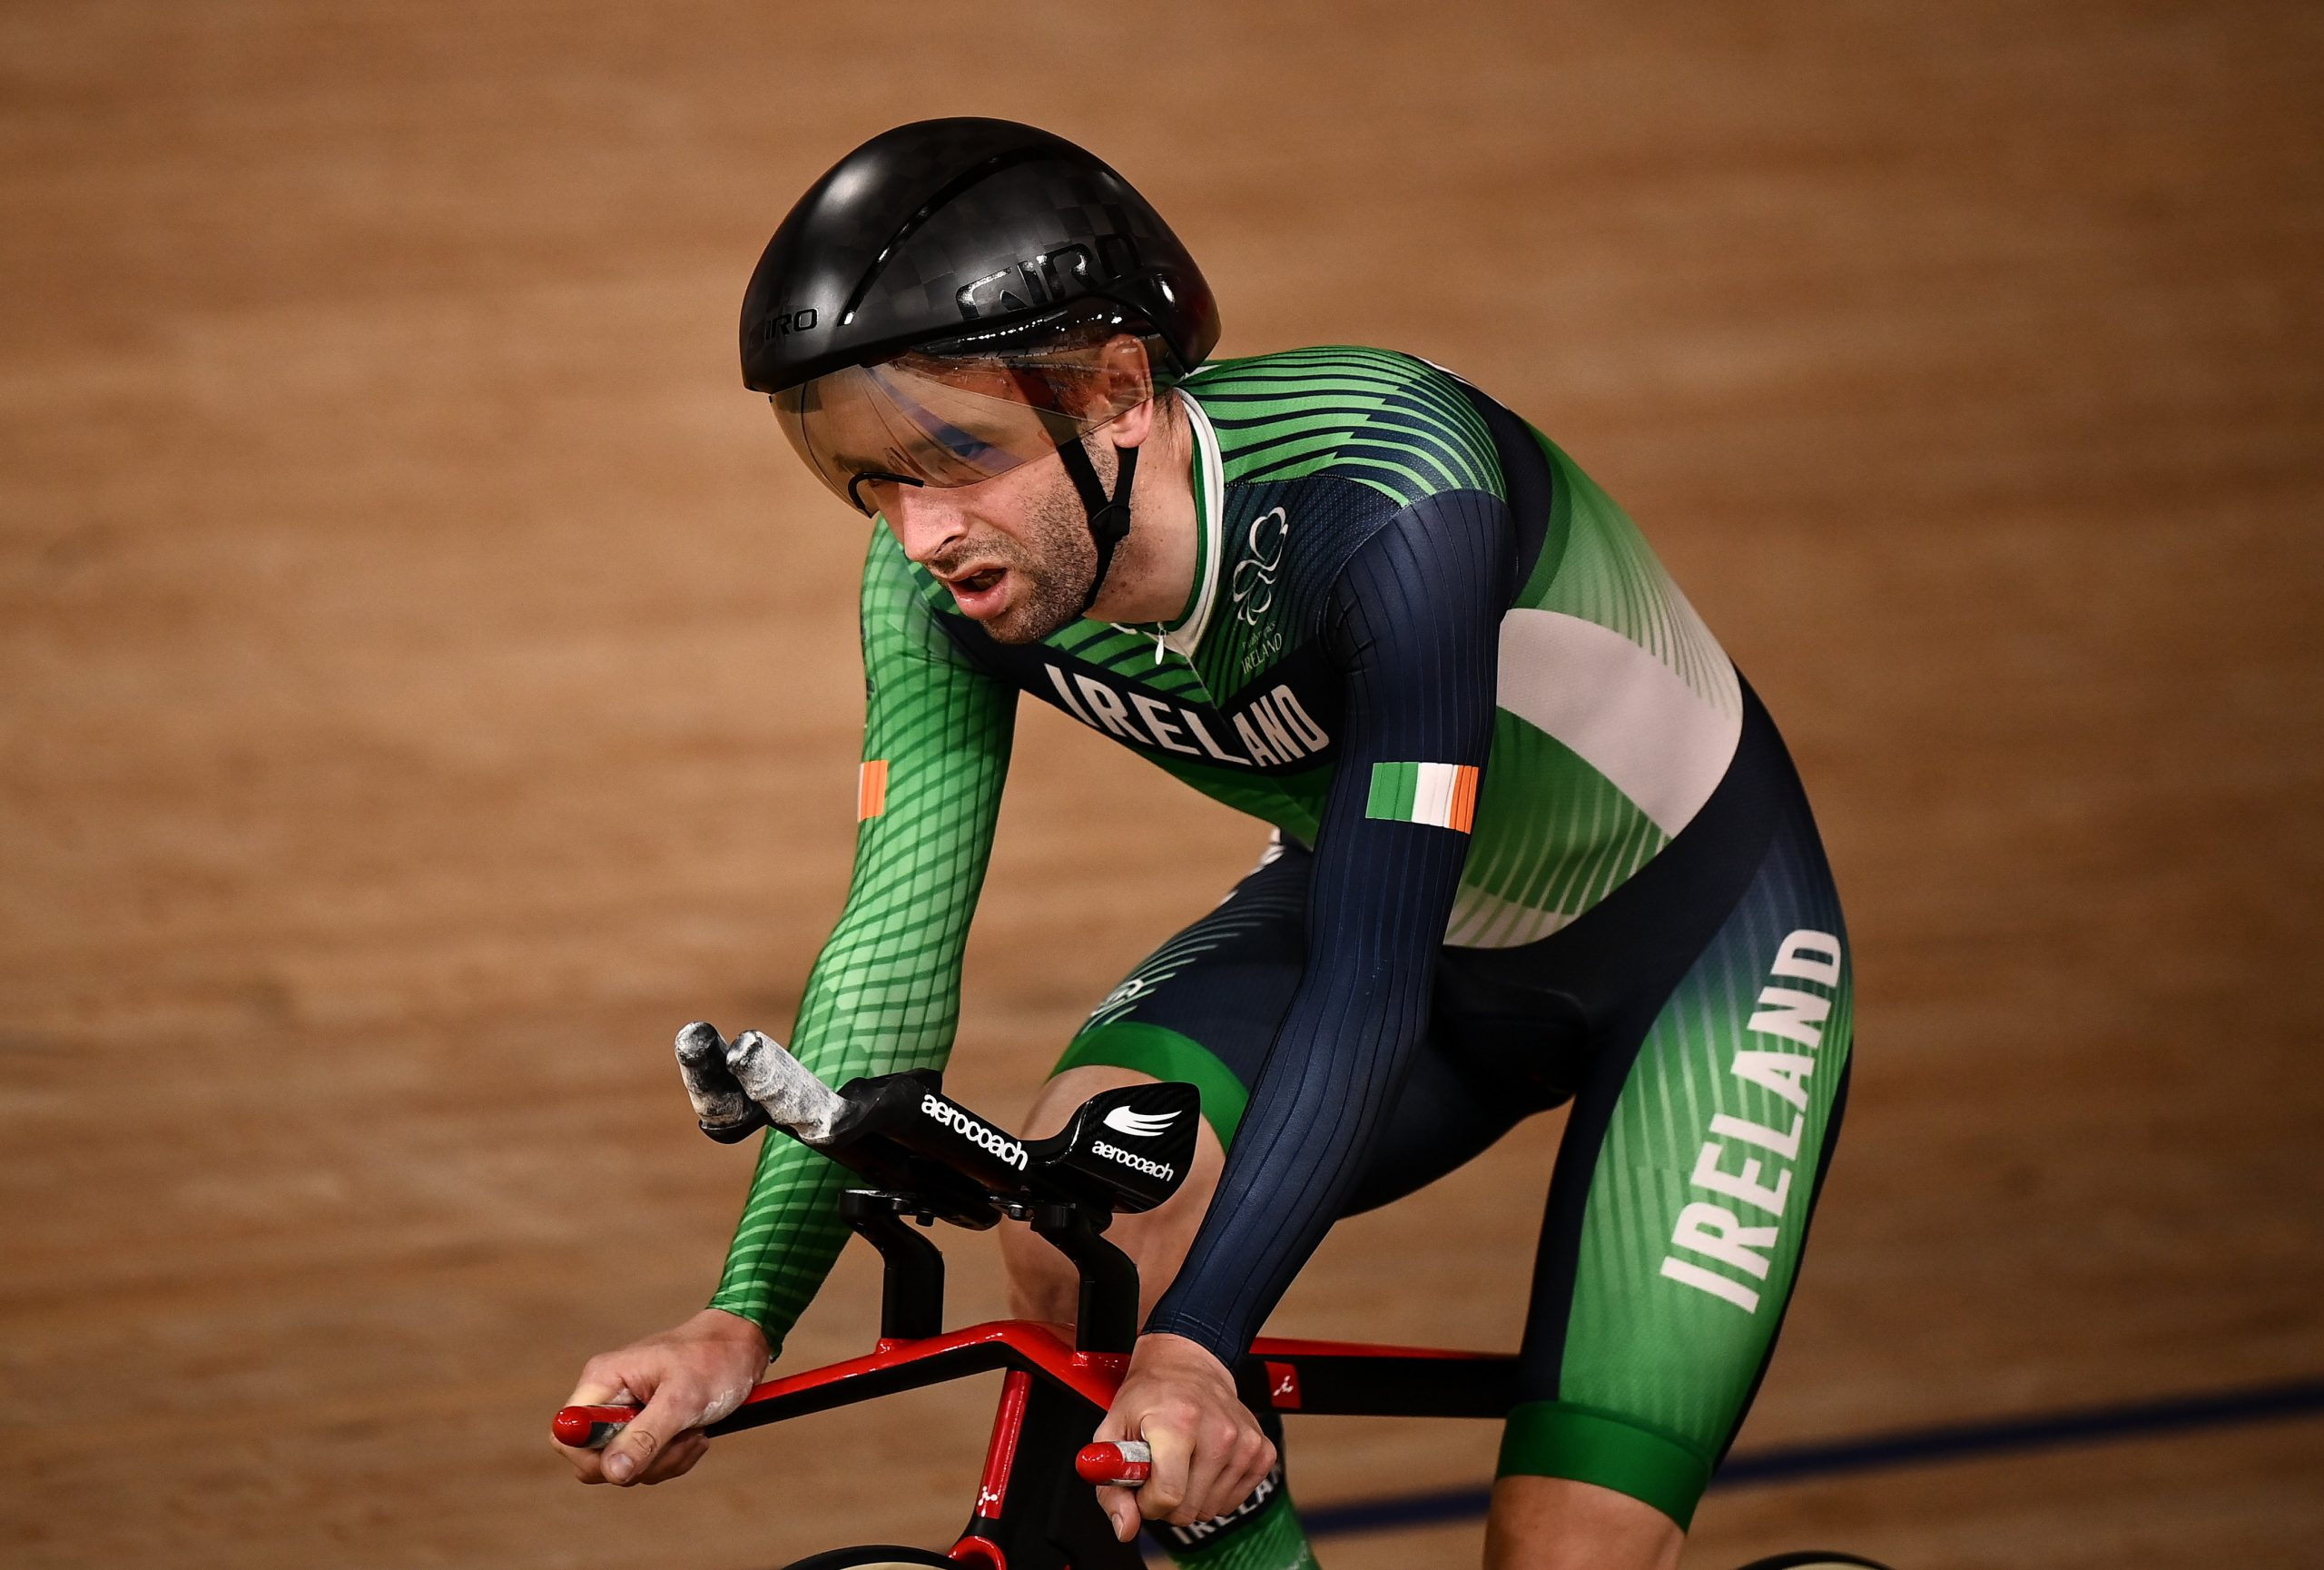 27 August 2021; Ronan Grimes of Ireland after finishing fourth in the Men's C4 4000 metre Individual Pursuit final at the Izu Velodrome on day three during the Tokyo 2020 Paralympic Games in Shizuoka, Japan. Photo by David Fitzgerald/Sportsfile *** NO REPRODUCTION FEE ***